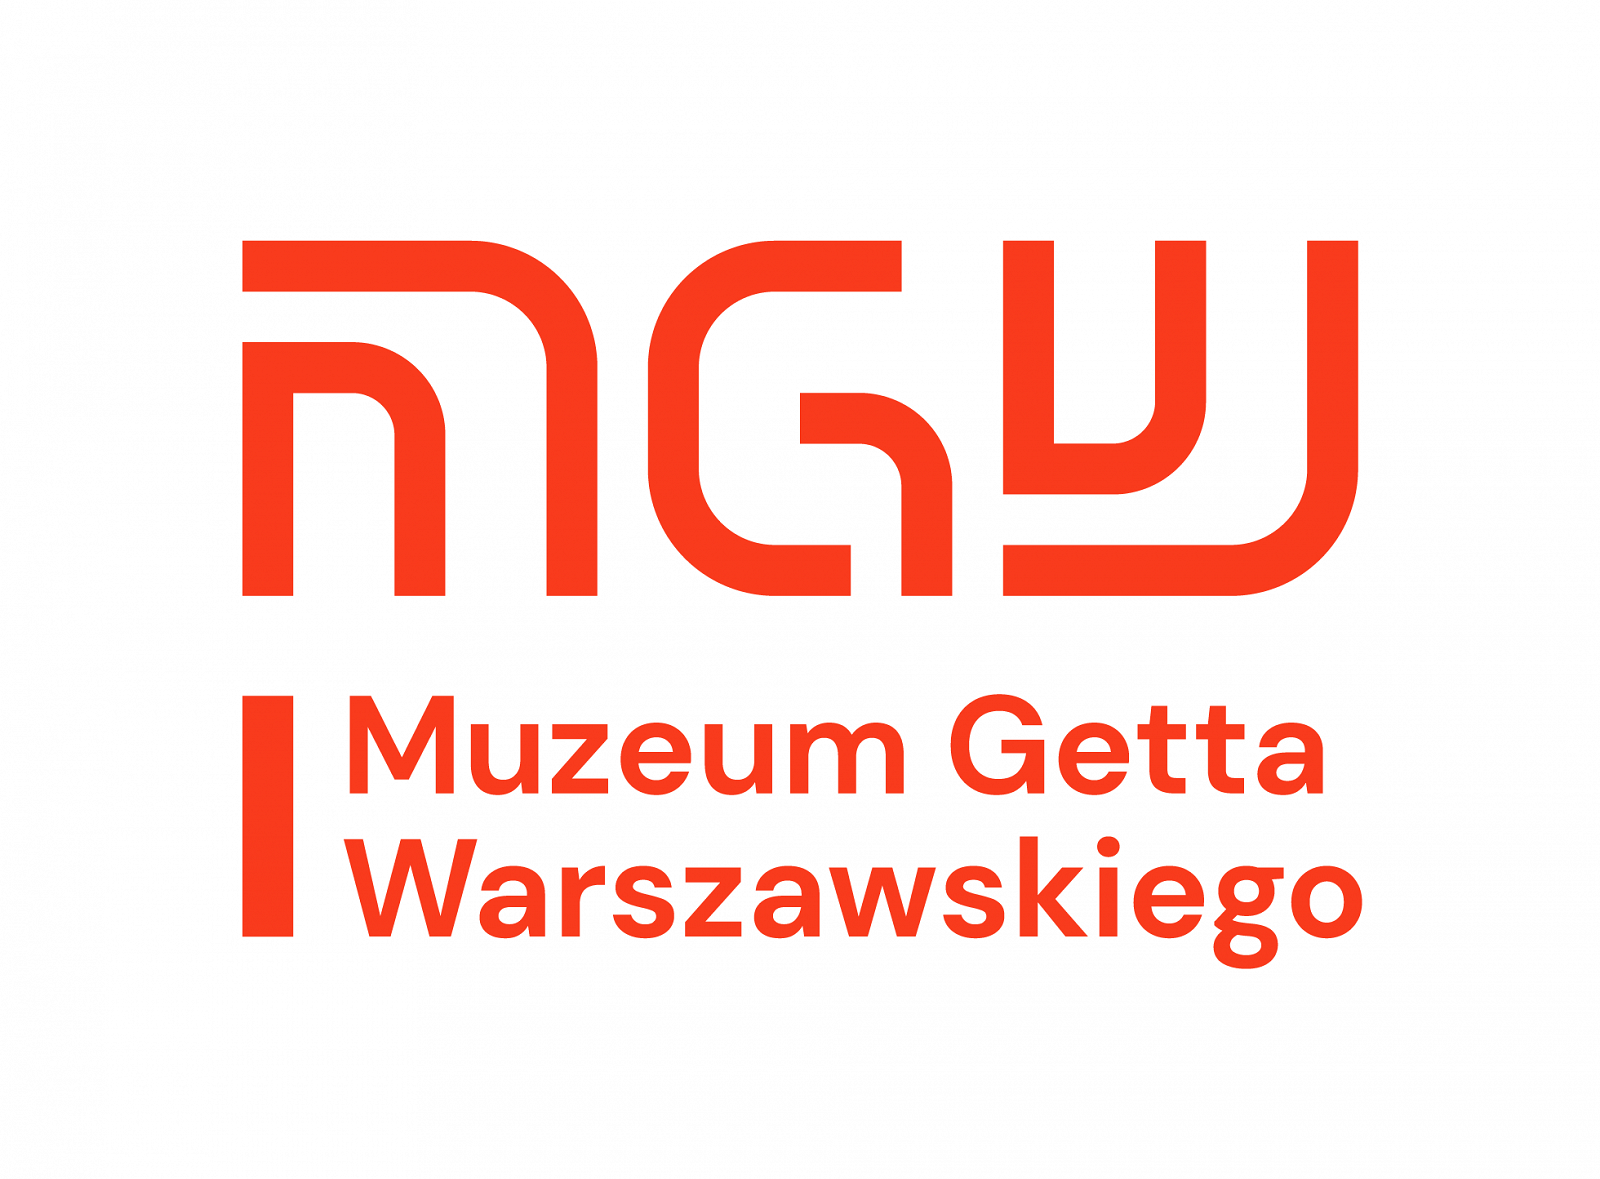 MGW_PL_Brightred.png [55.88 KB]